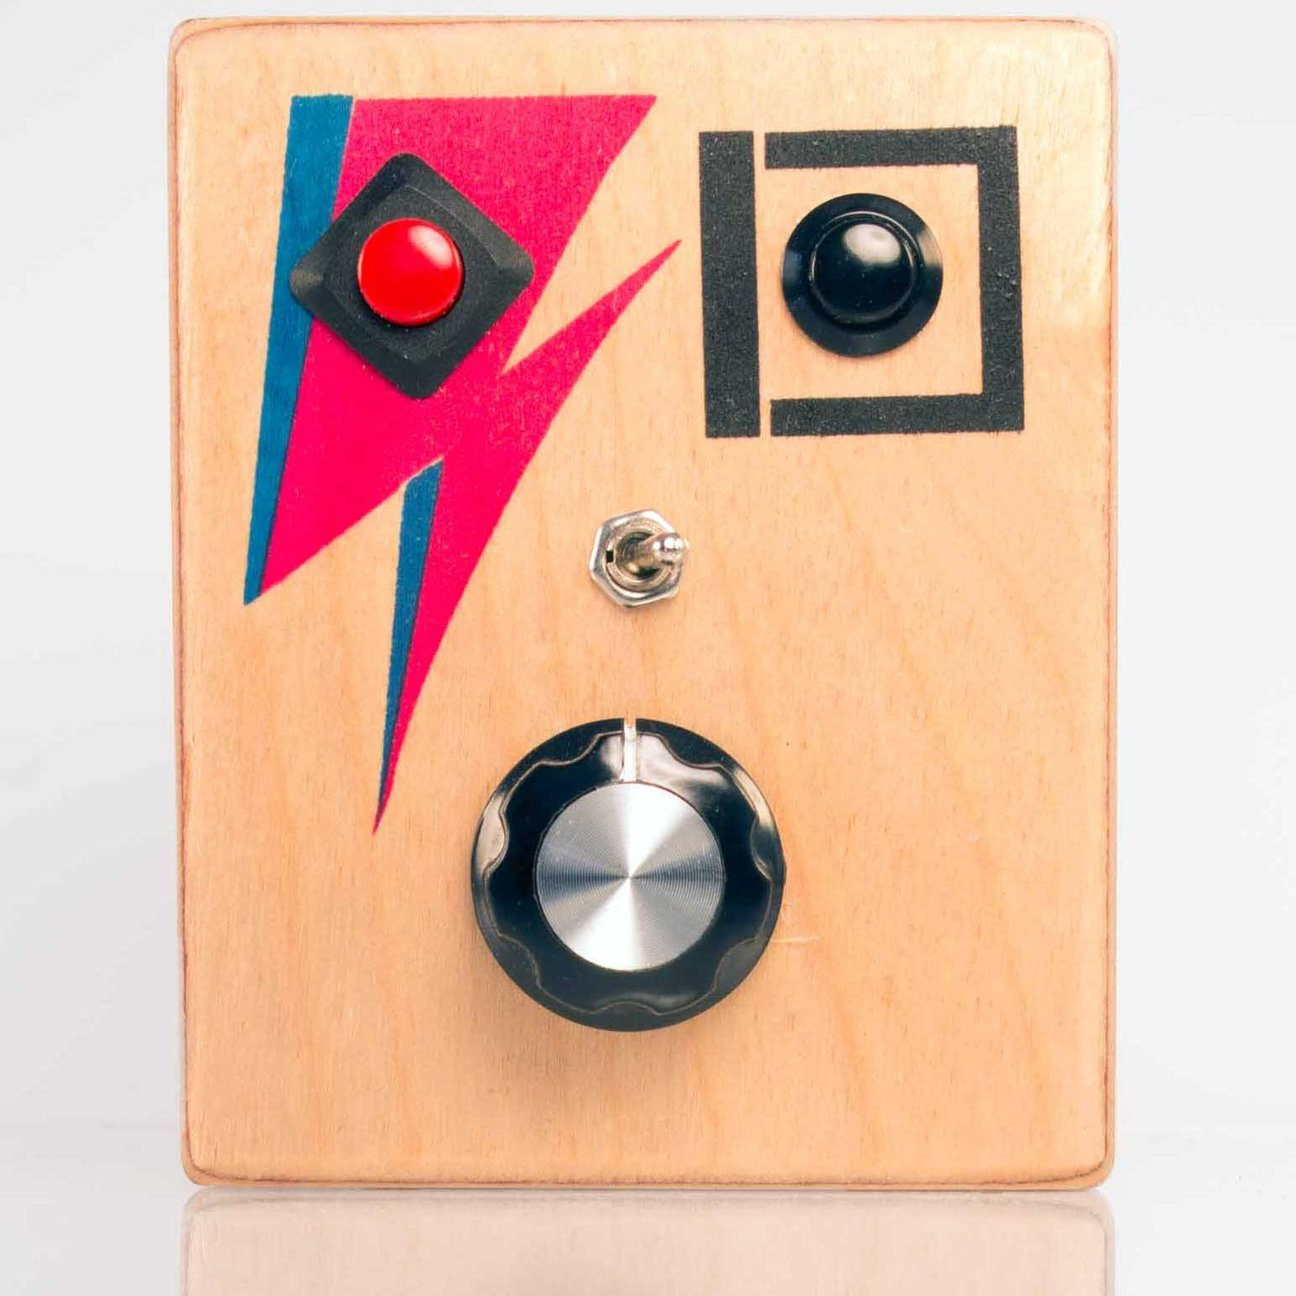 Cool gifts for tween boys (and girls): Space Oddity Bowie limited edition handmade sound machine from Brand New Noise